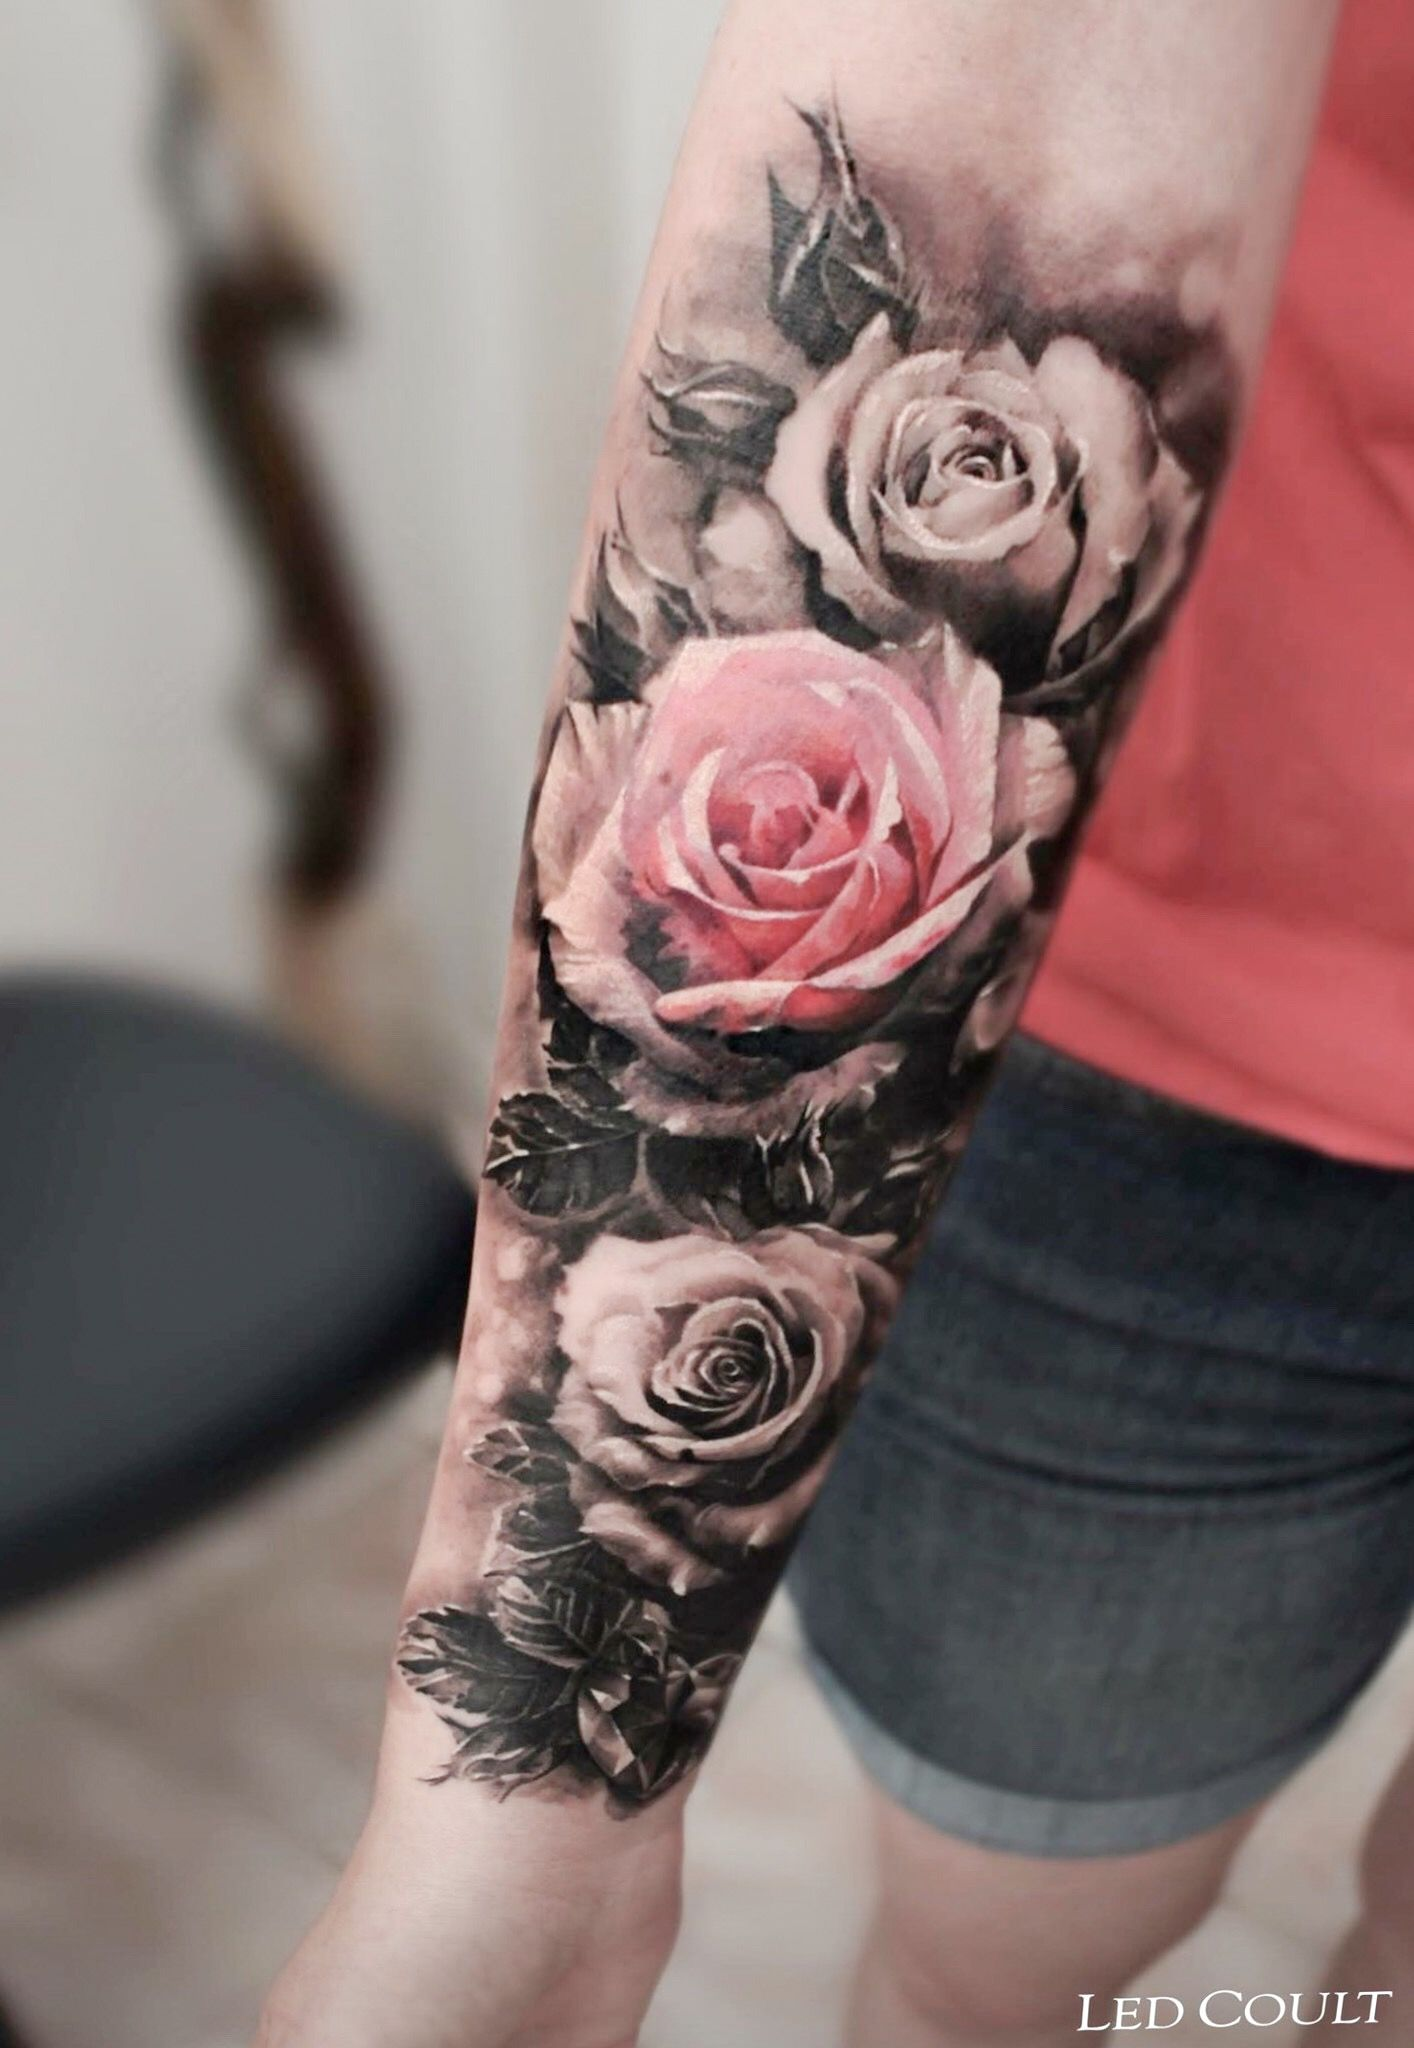 98bf71169 ♚♛нσυѕтσиqυєєивяι♛♚ Female Tattoos, Forarm Tattoos For Women, Rose Tattoos  For